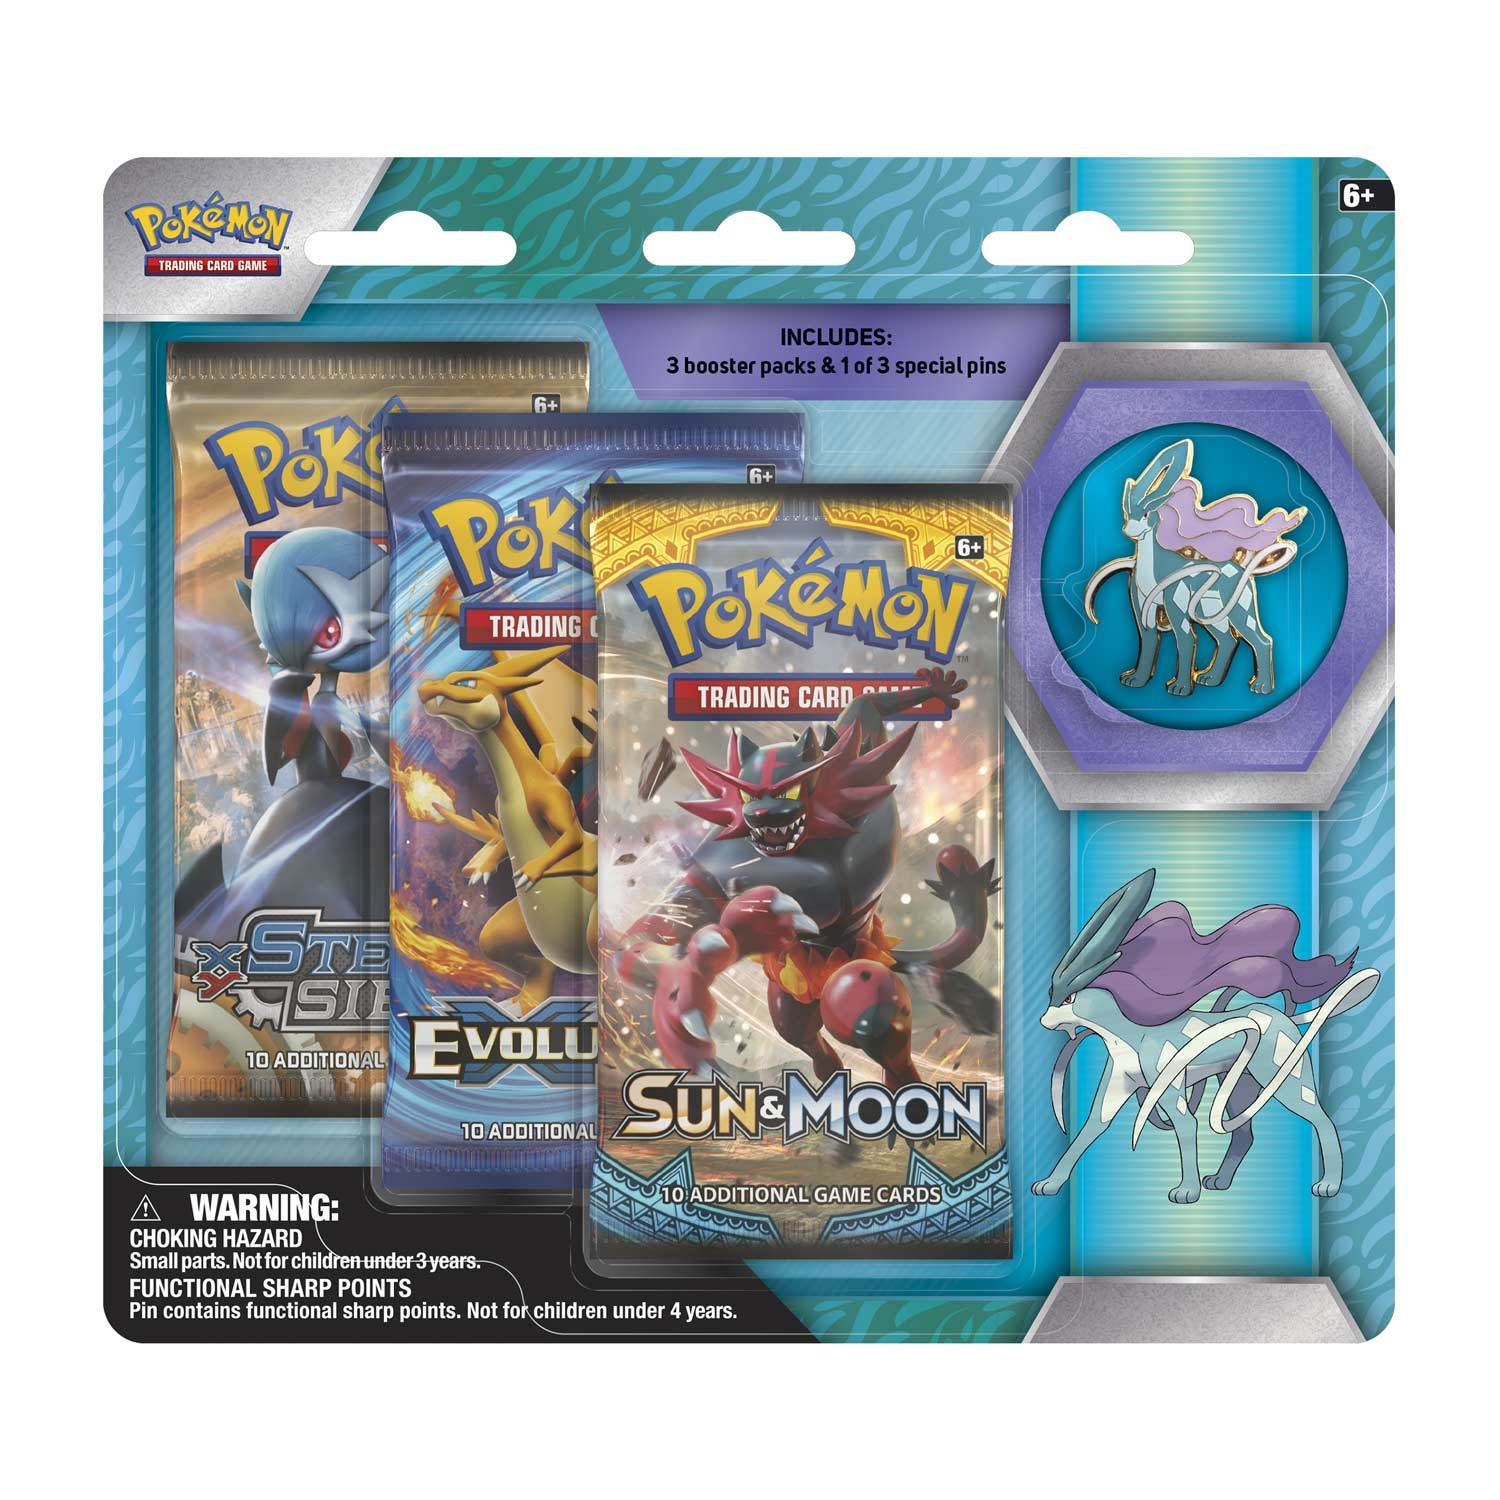 Pokemon TCG Suicune 3 Pack Pin Blister image